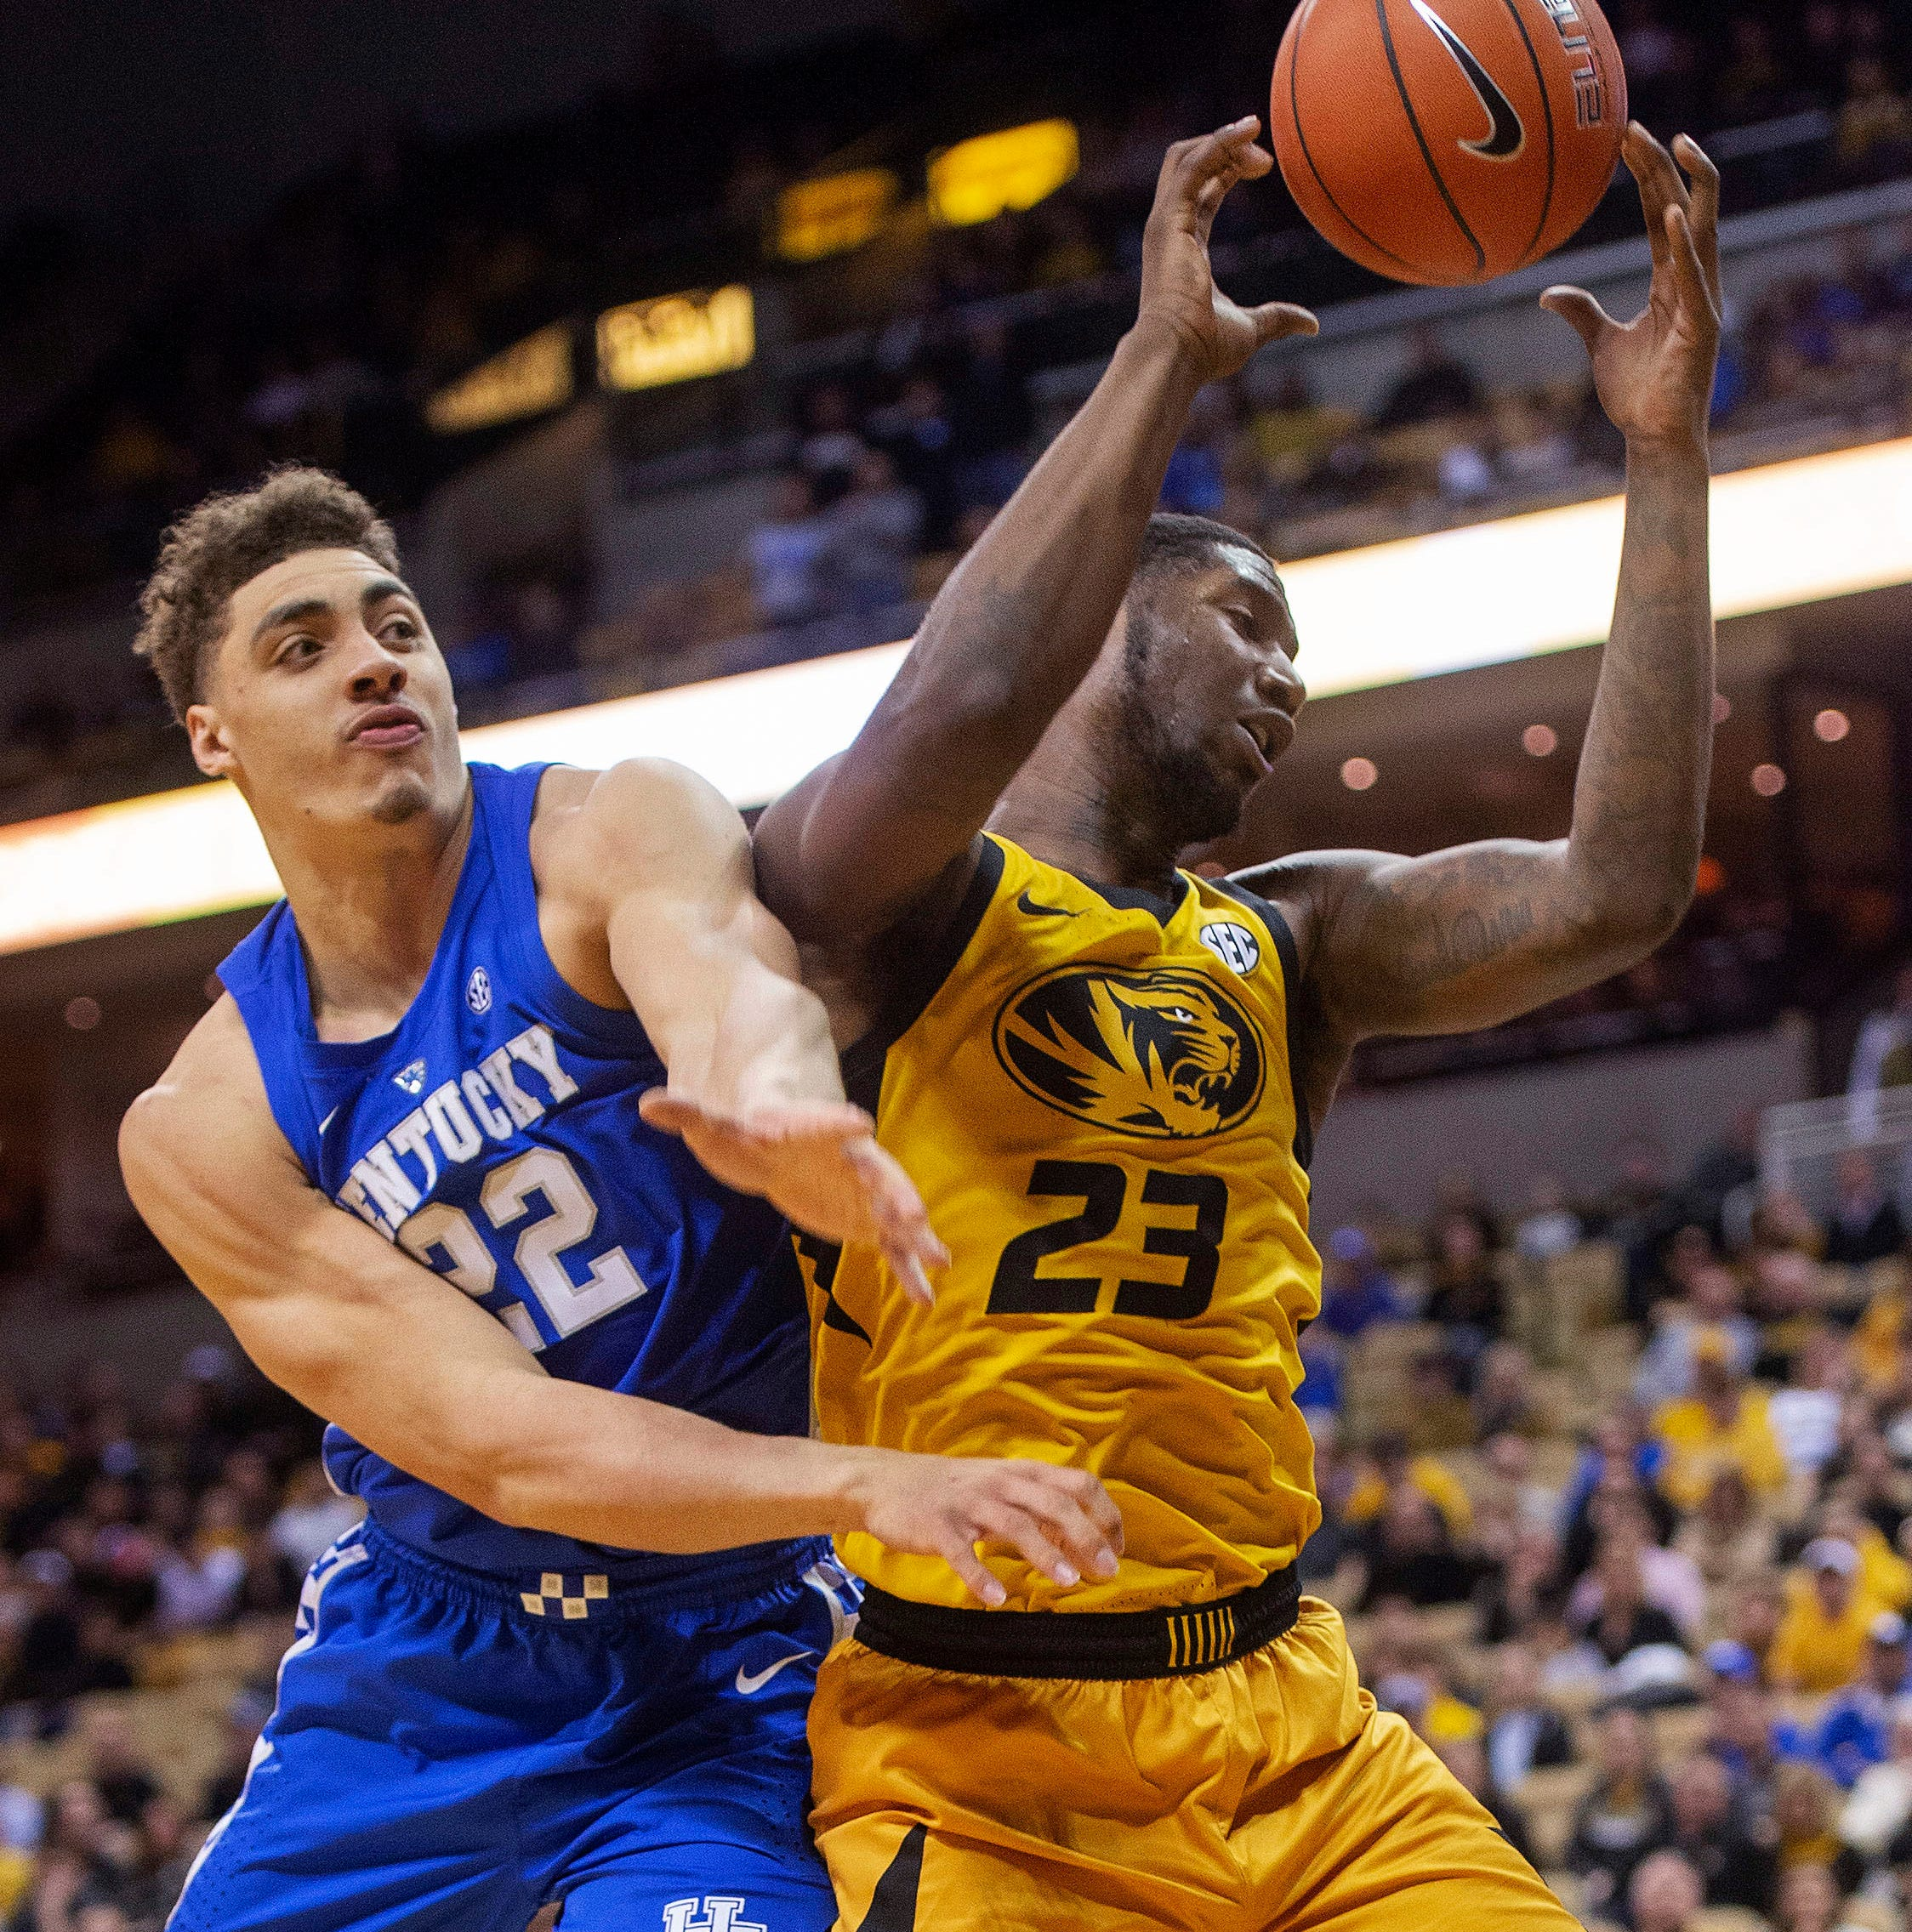 Kentucky basketball struggles late but holds off Missouri on the road